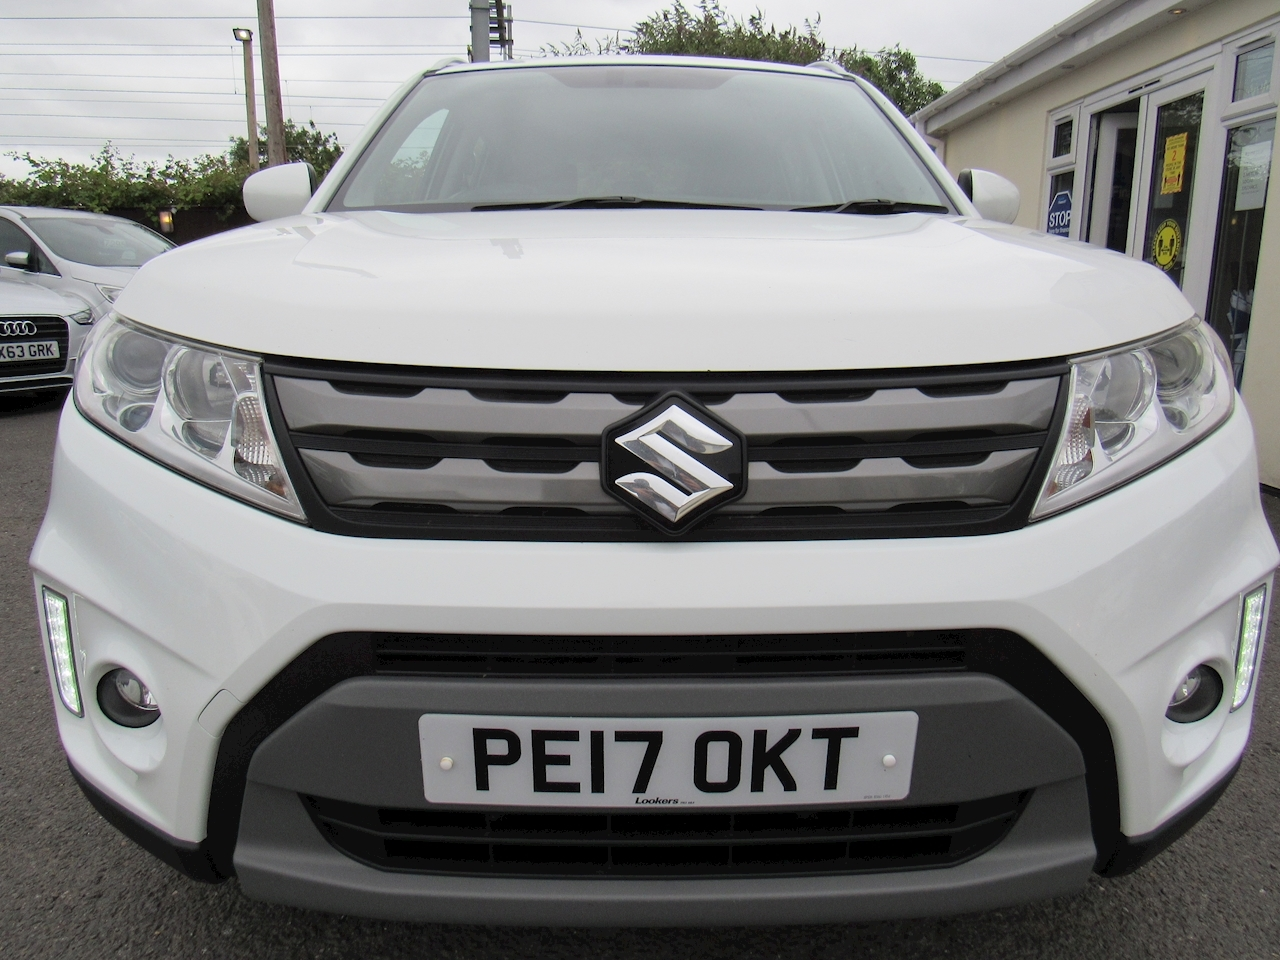 Suzuki Vitara Sz4 Hatchback 1.6 Manual Petrol